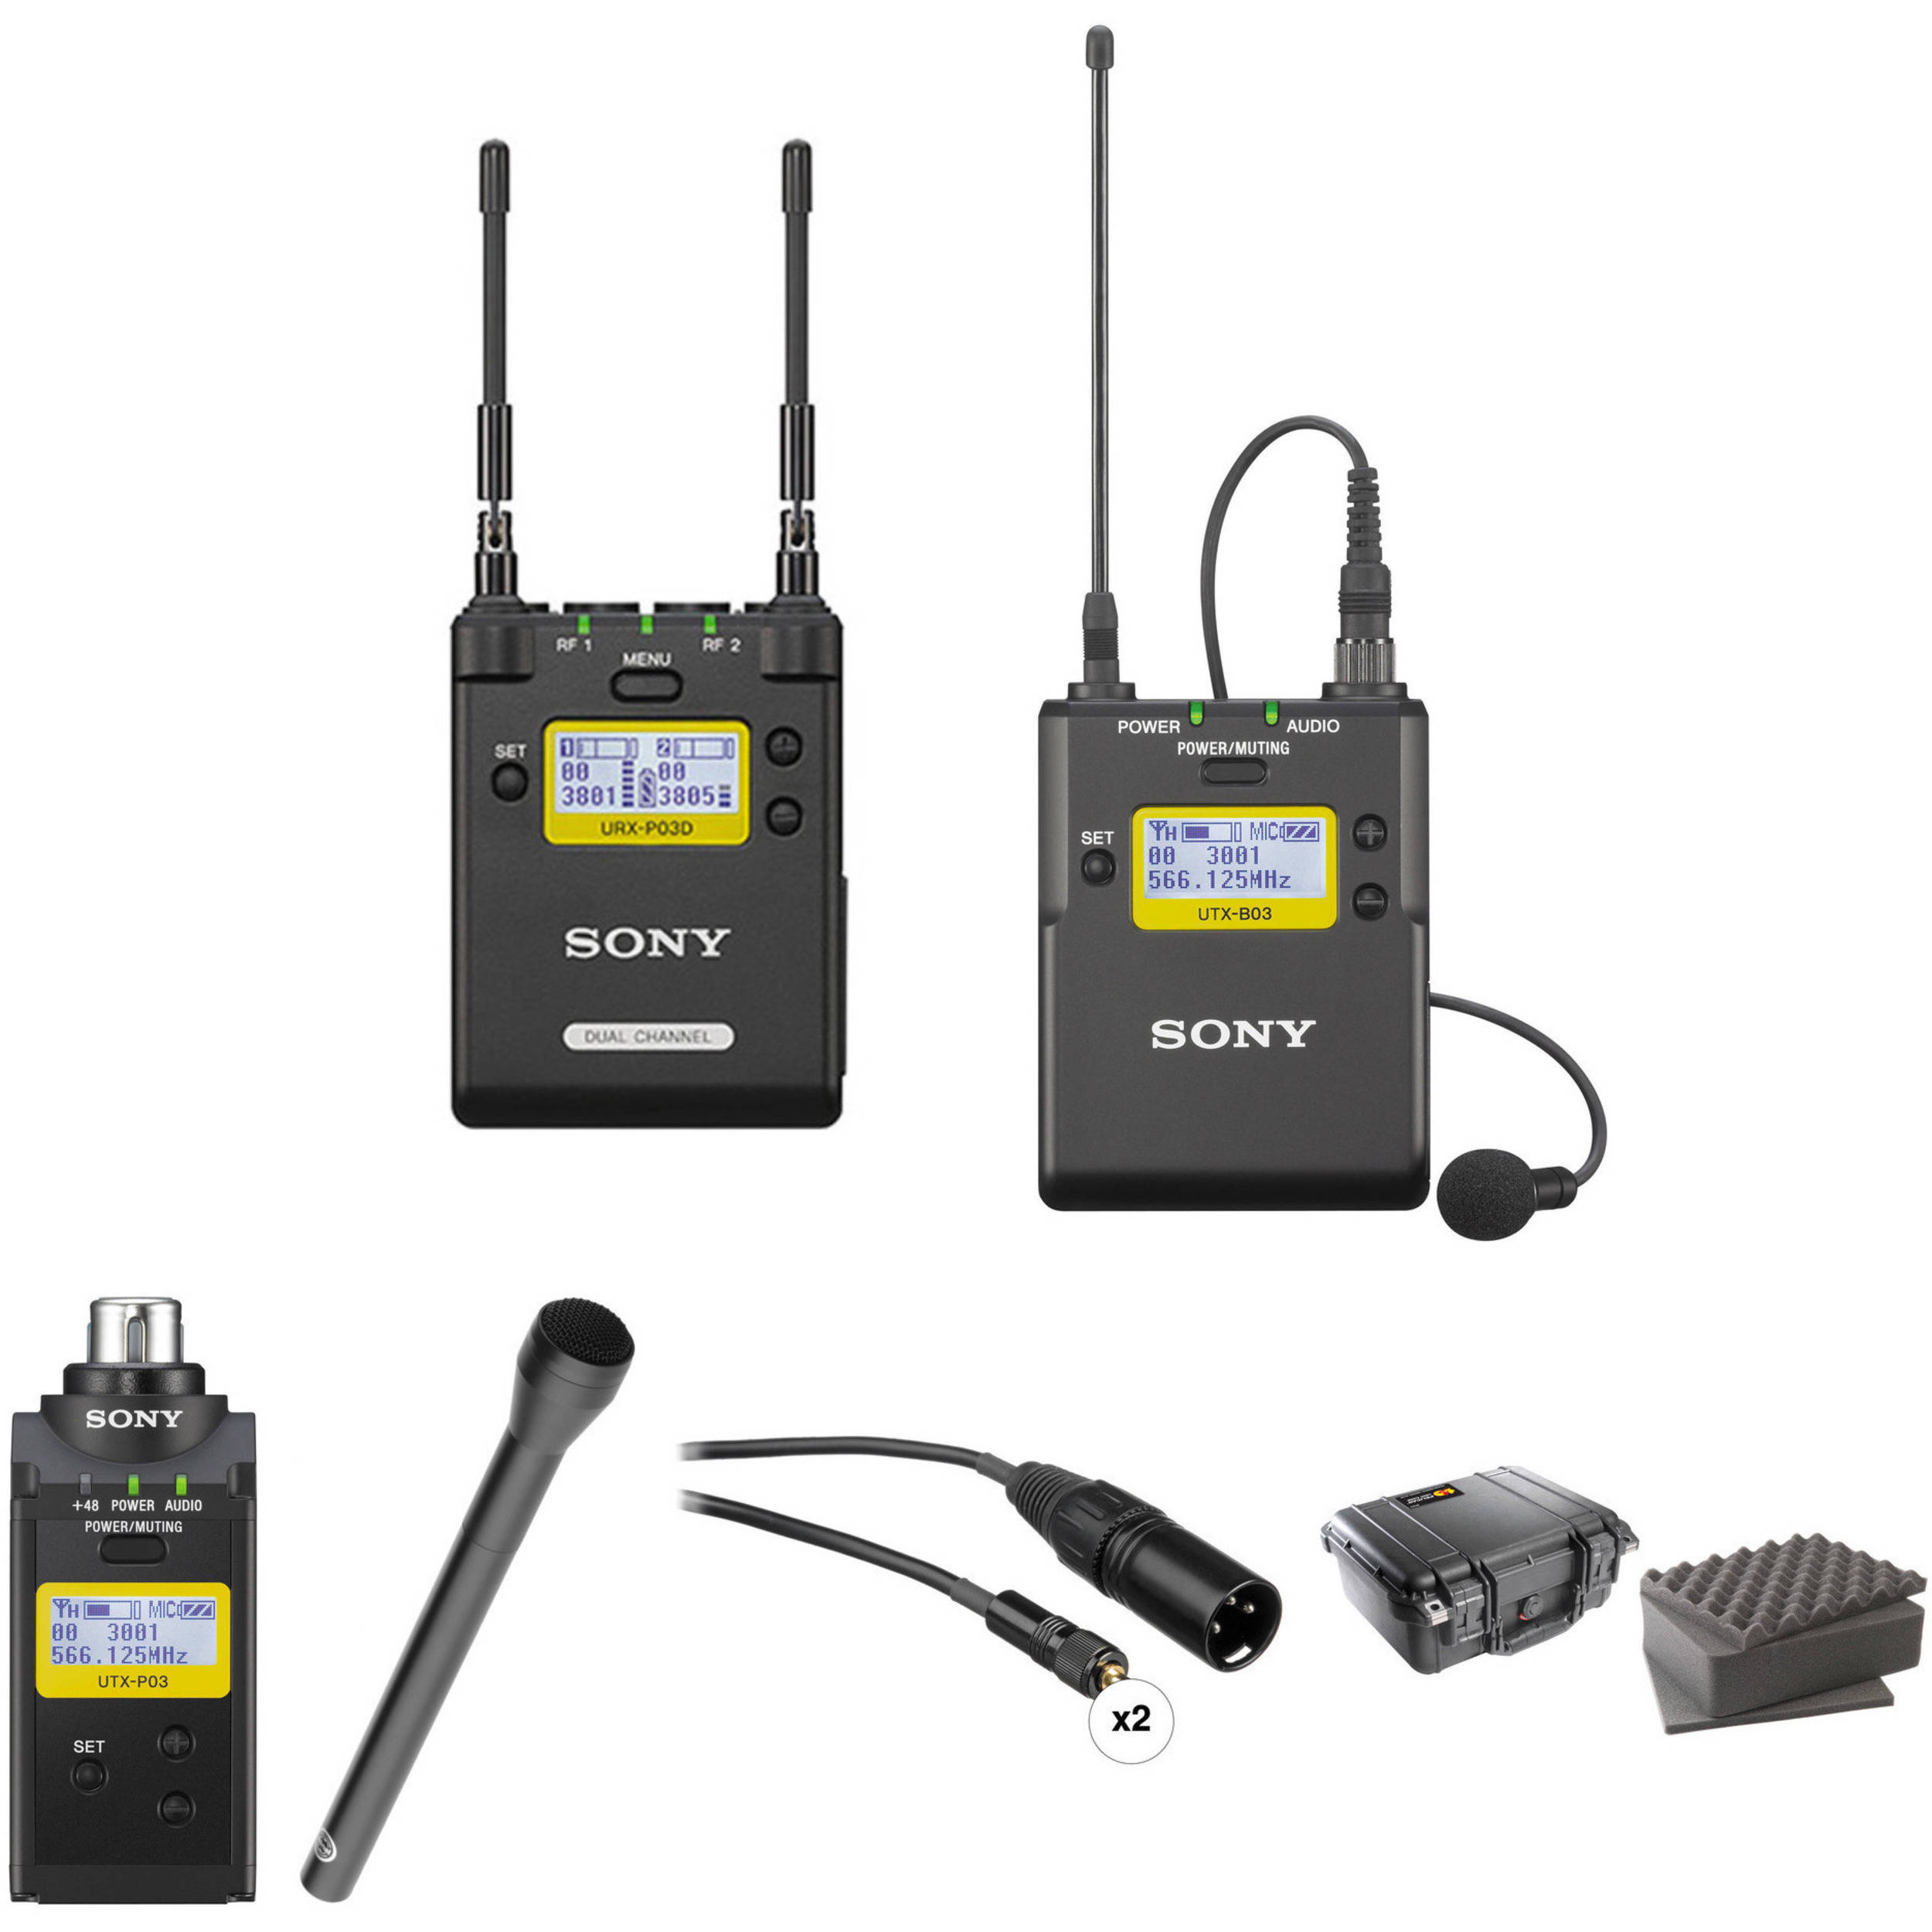 Sony 2 Channel Receiver With Bodypack Plug On Transmitter Bh Infrared Ir Circuit Circuits Handheld Mic Kit